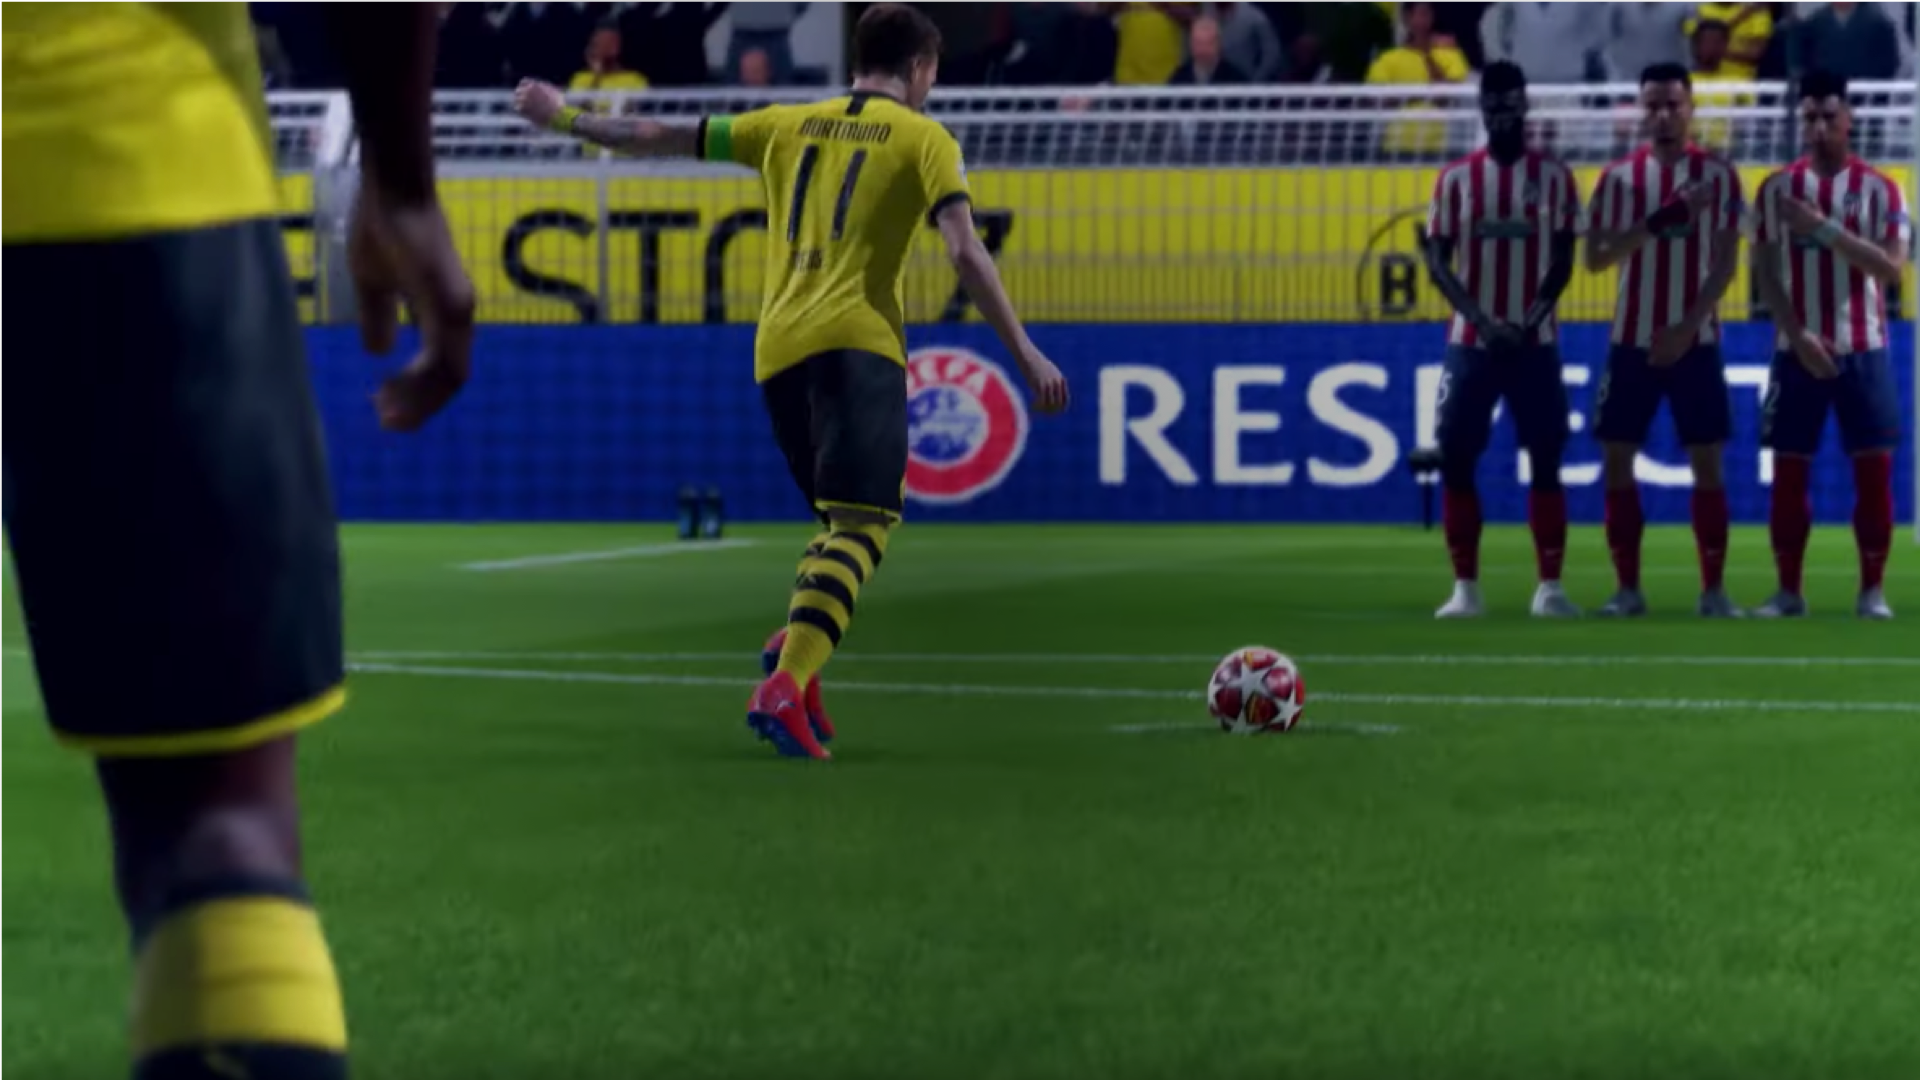 FIFA 20 New Gameplay Features - EA SPORTS Official Site